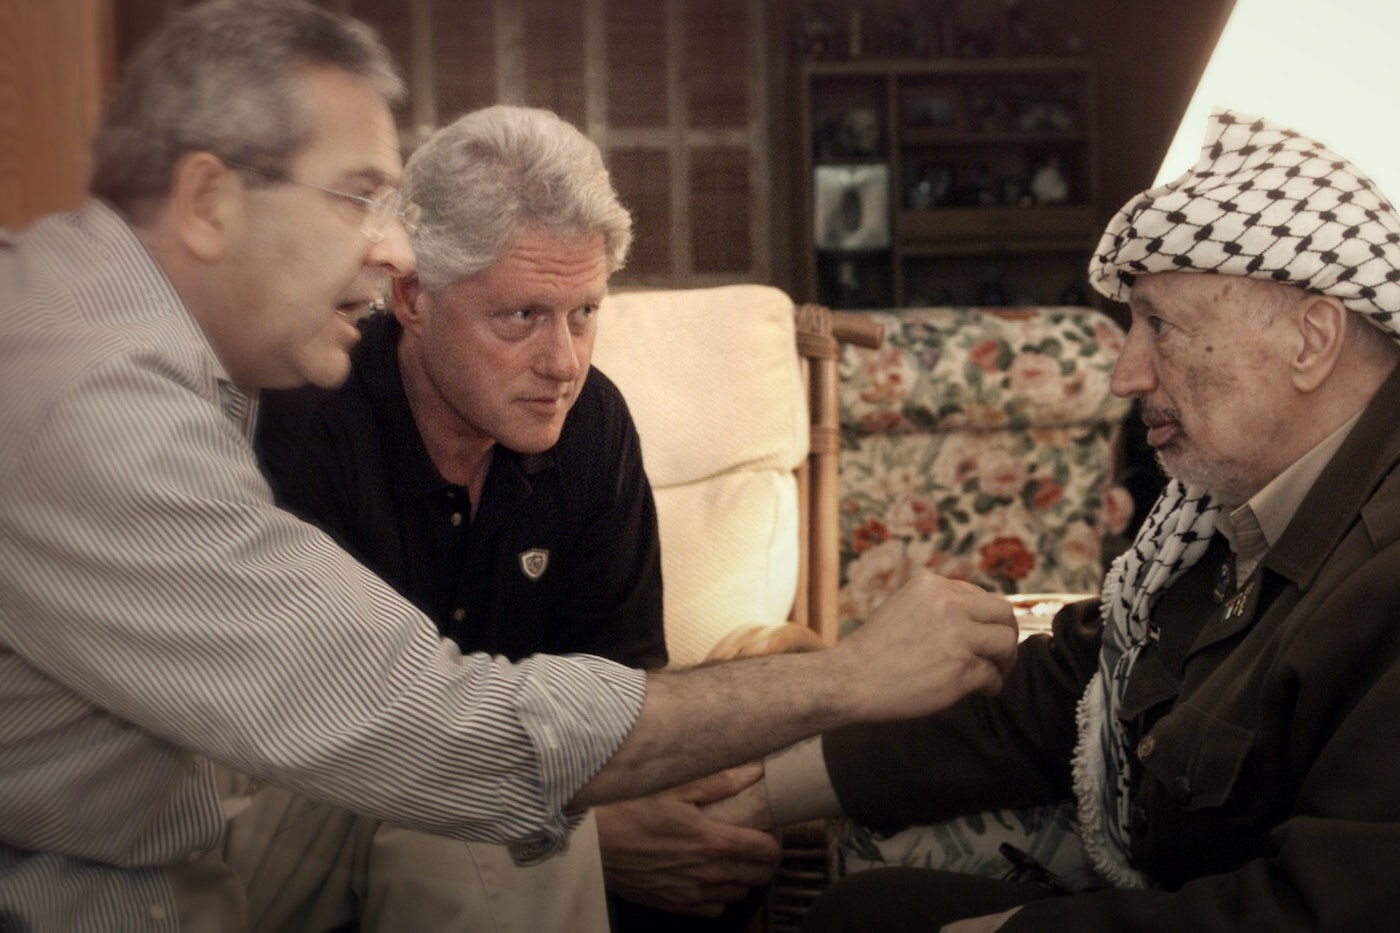 President Bill Clinton and Gamal Hamal speak closely with Yasser Arafat, touching his arm.